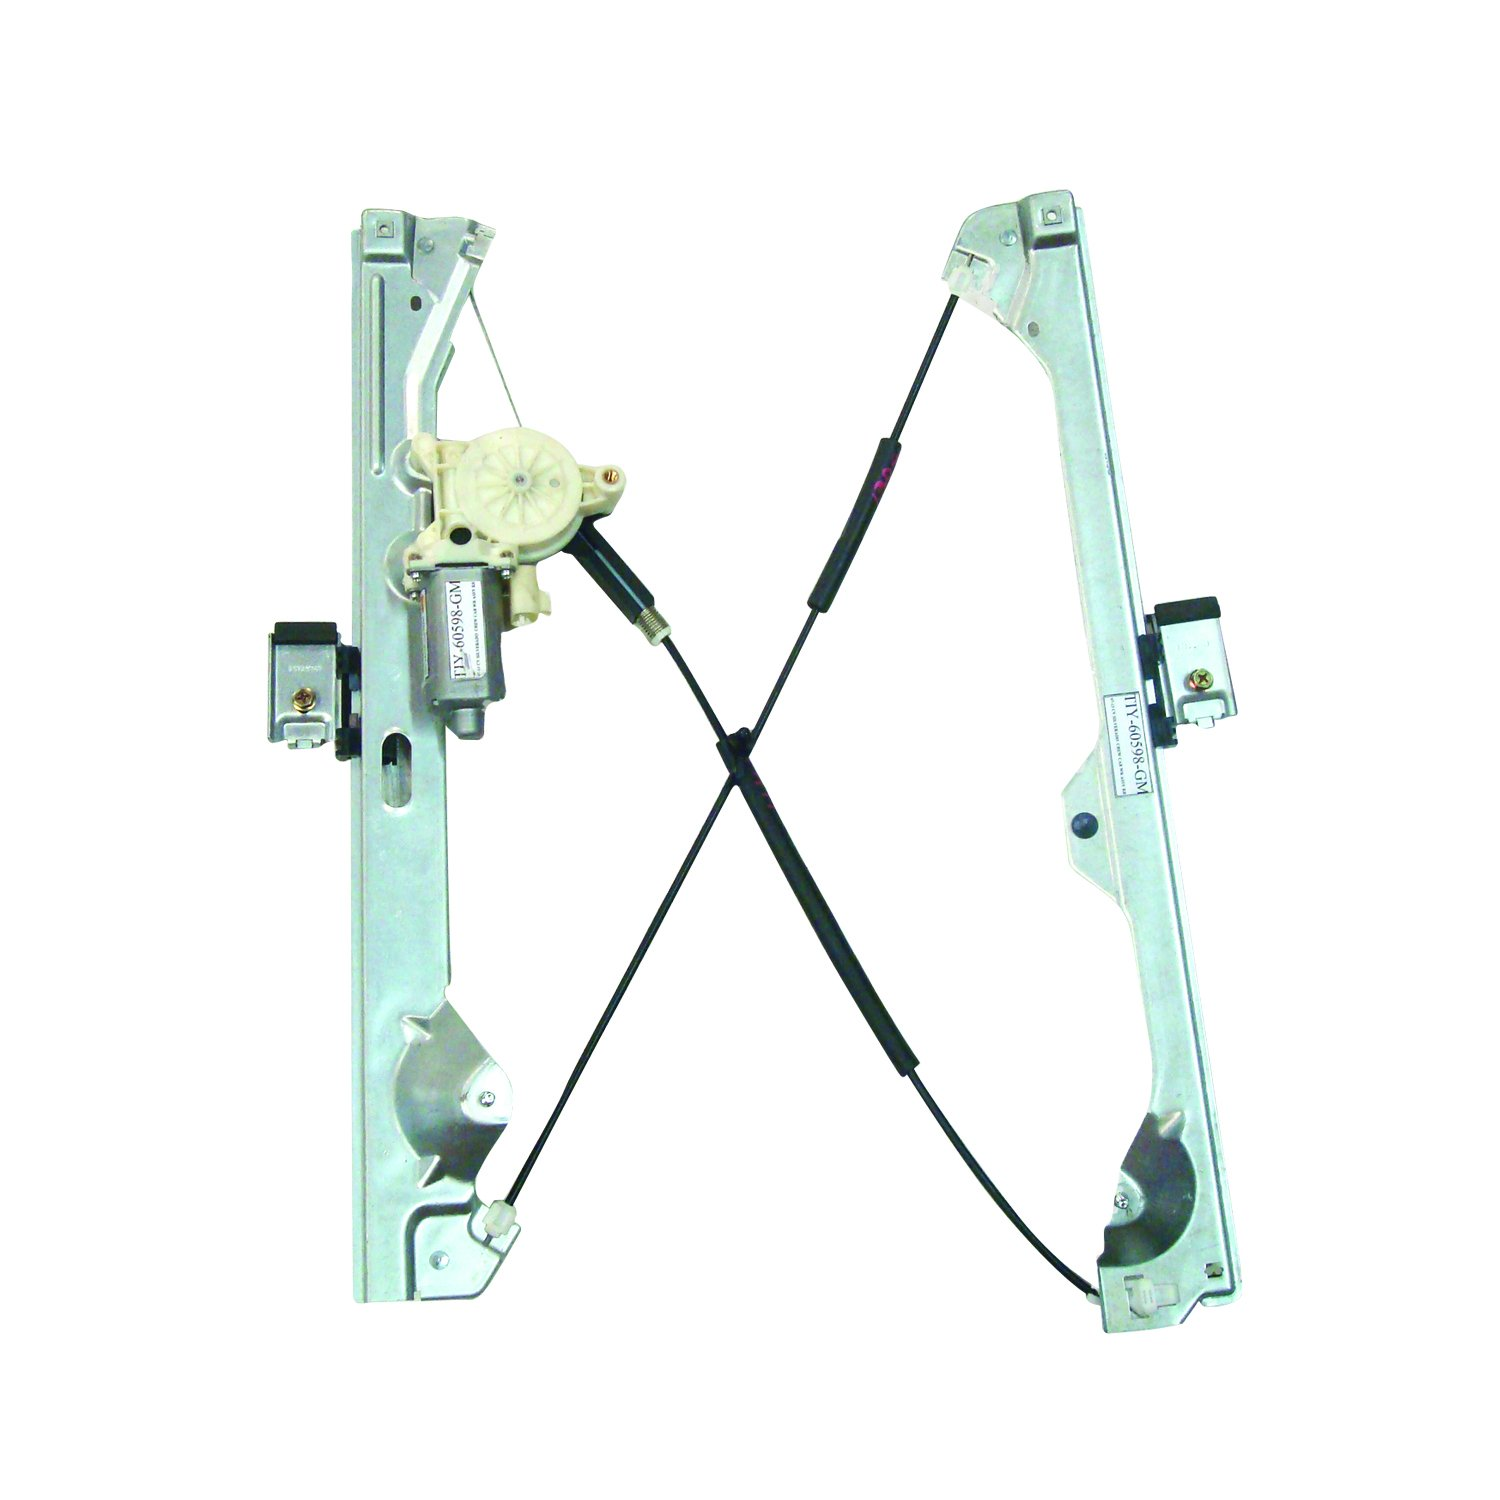 CHEVROLET AVALANCHE 2007-2013 PartsChannel GM1551129 OE Replacement Power Window Motor and Regulator Assembly